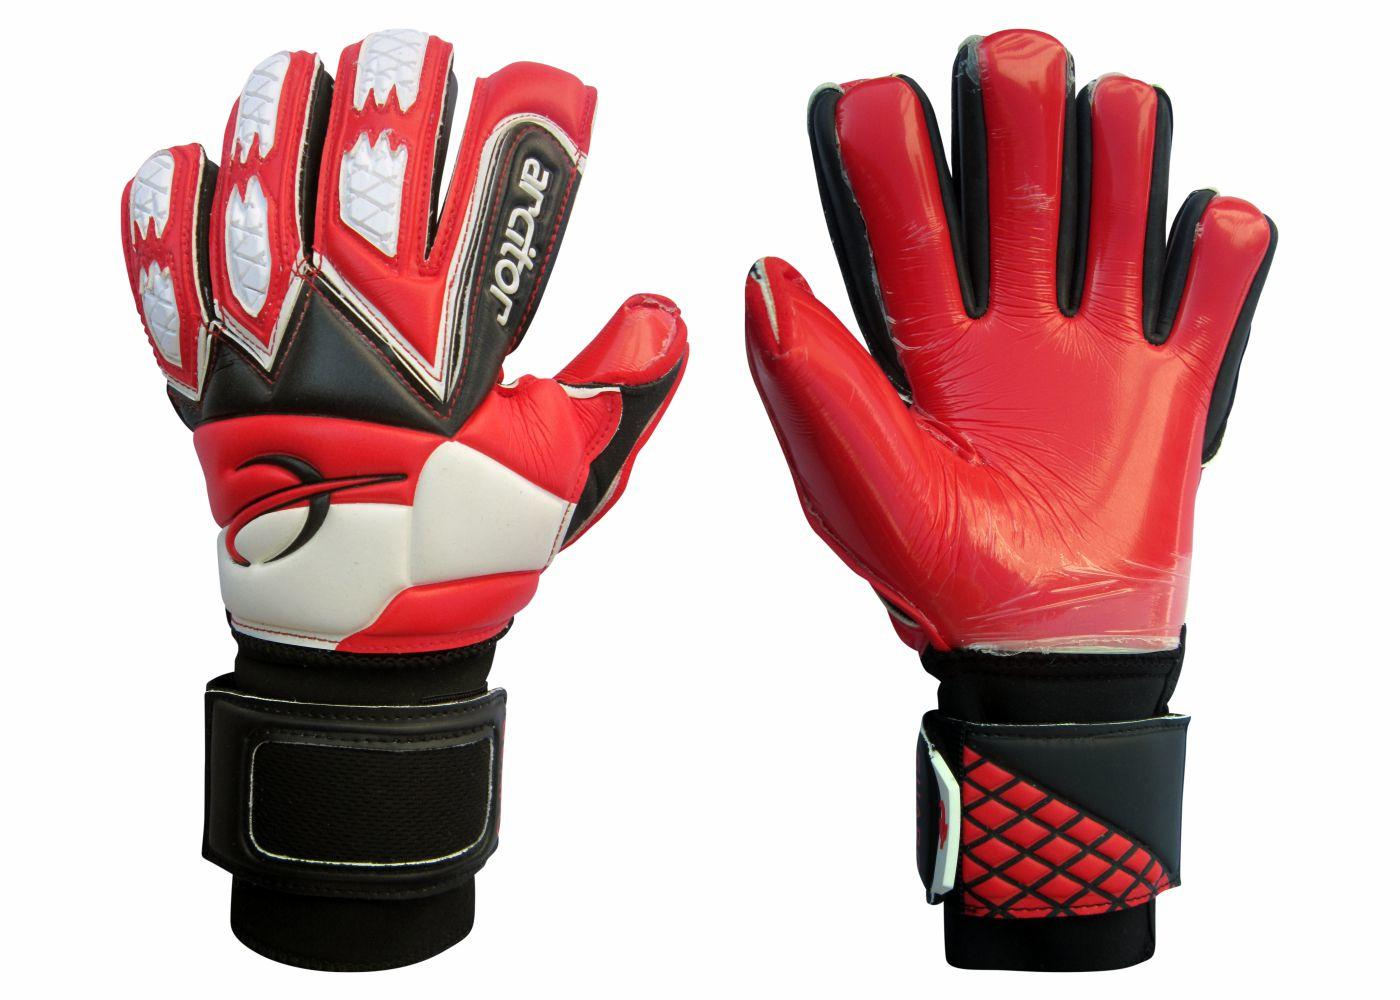 Arcitor Guapo Red Goalkeeping Gloves